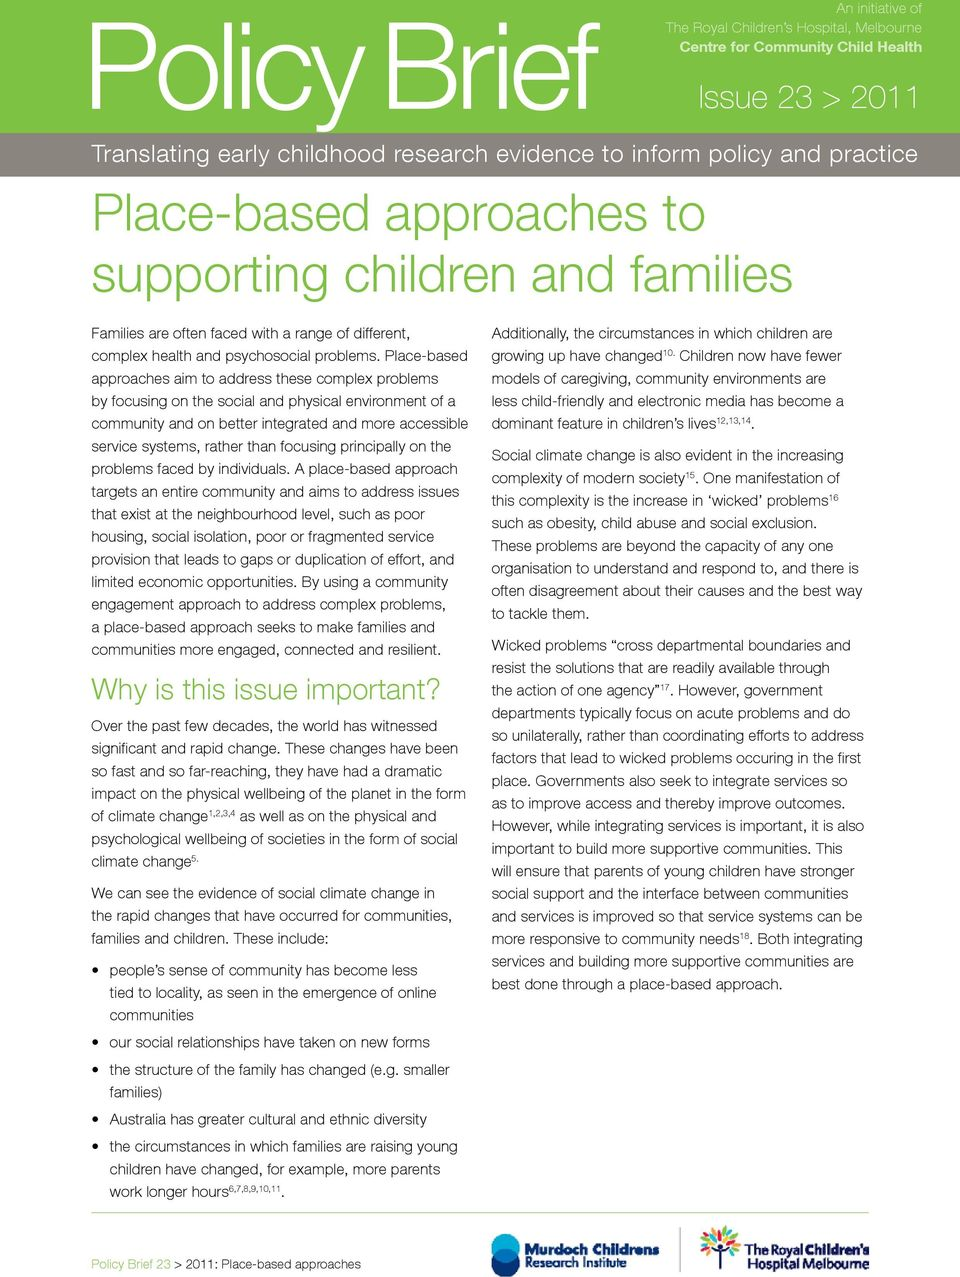 Place-based approaches aim to address these complex problems by focusing on the social and physical environment of a community and on better integrated and more accessible service systems, rather